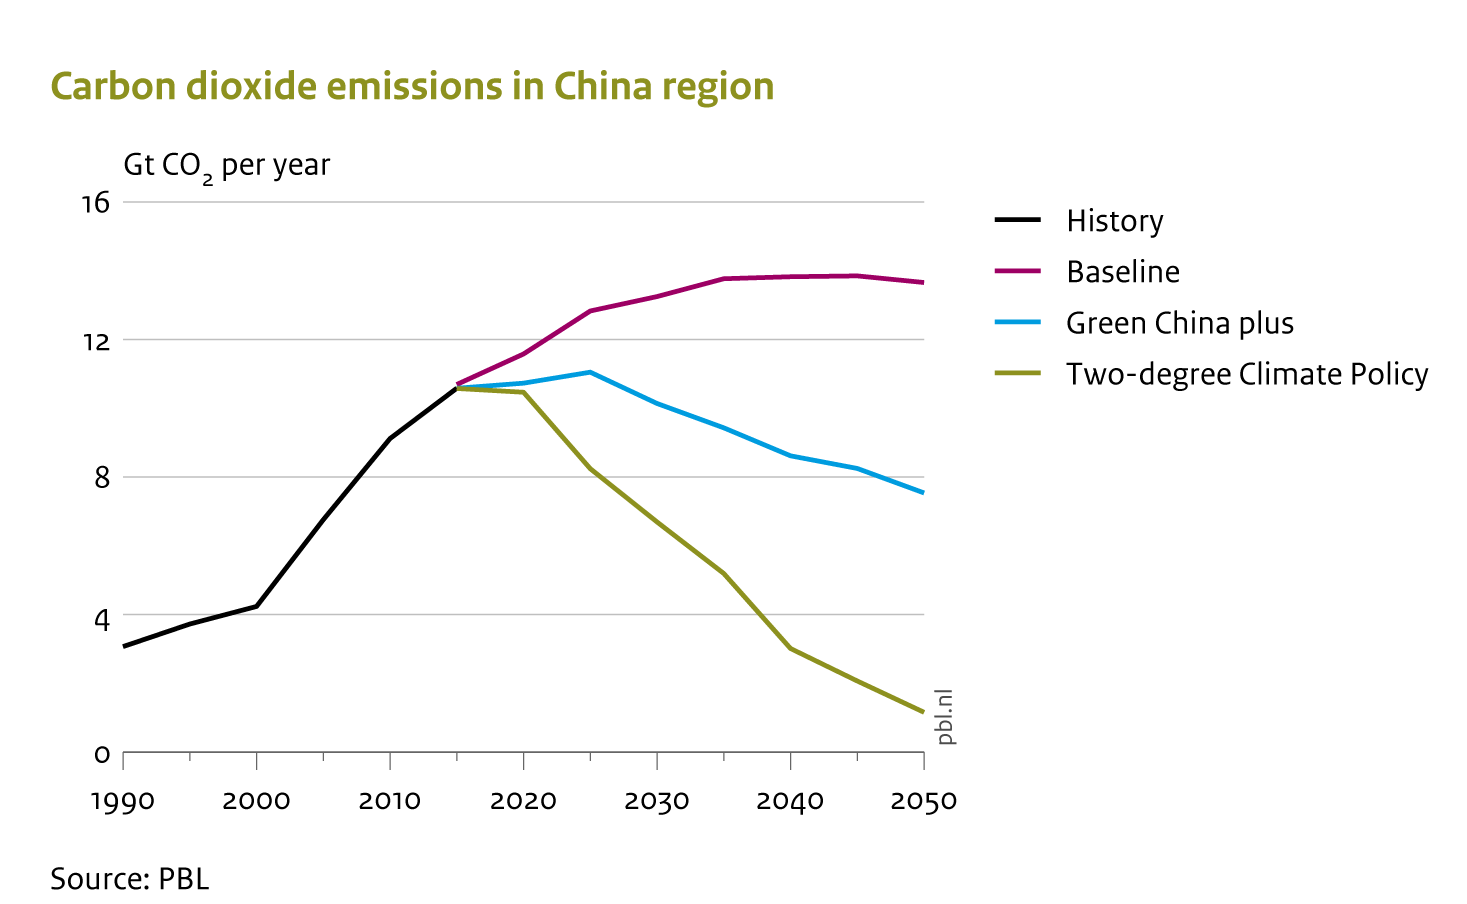 By 2050, under the Green China plus scenario, China's carbon dioxide emissions will be almost halved, compared to those under the baseline scenario. However, this is only half of what is needed for climate stabilisation at an average warming of 2 °C.